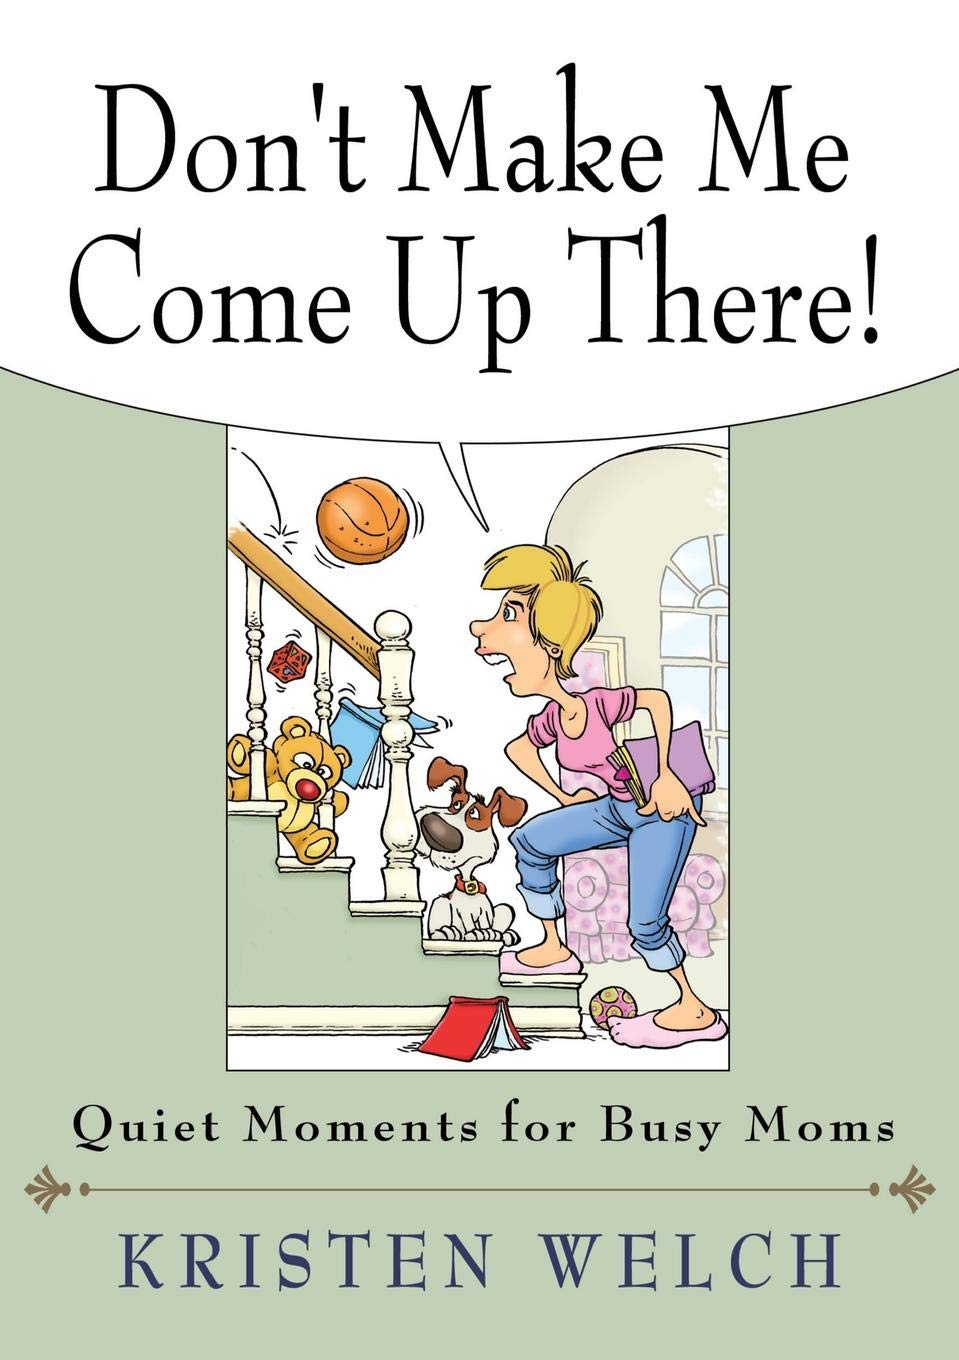 Don't Make Me Come Up There!: Quiet Moments for Busy Moms PDF